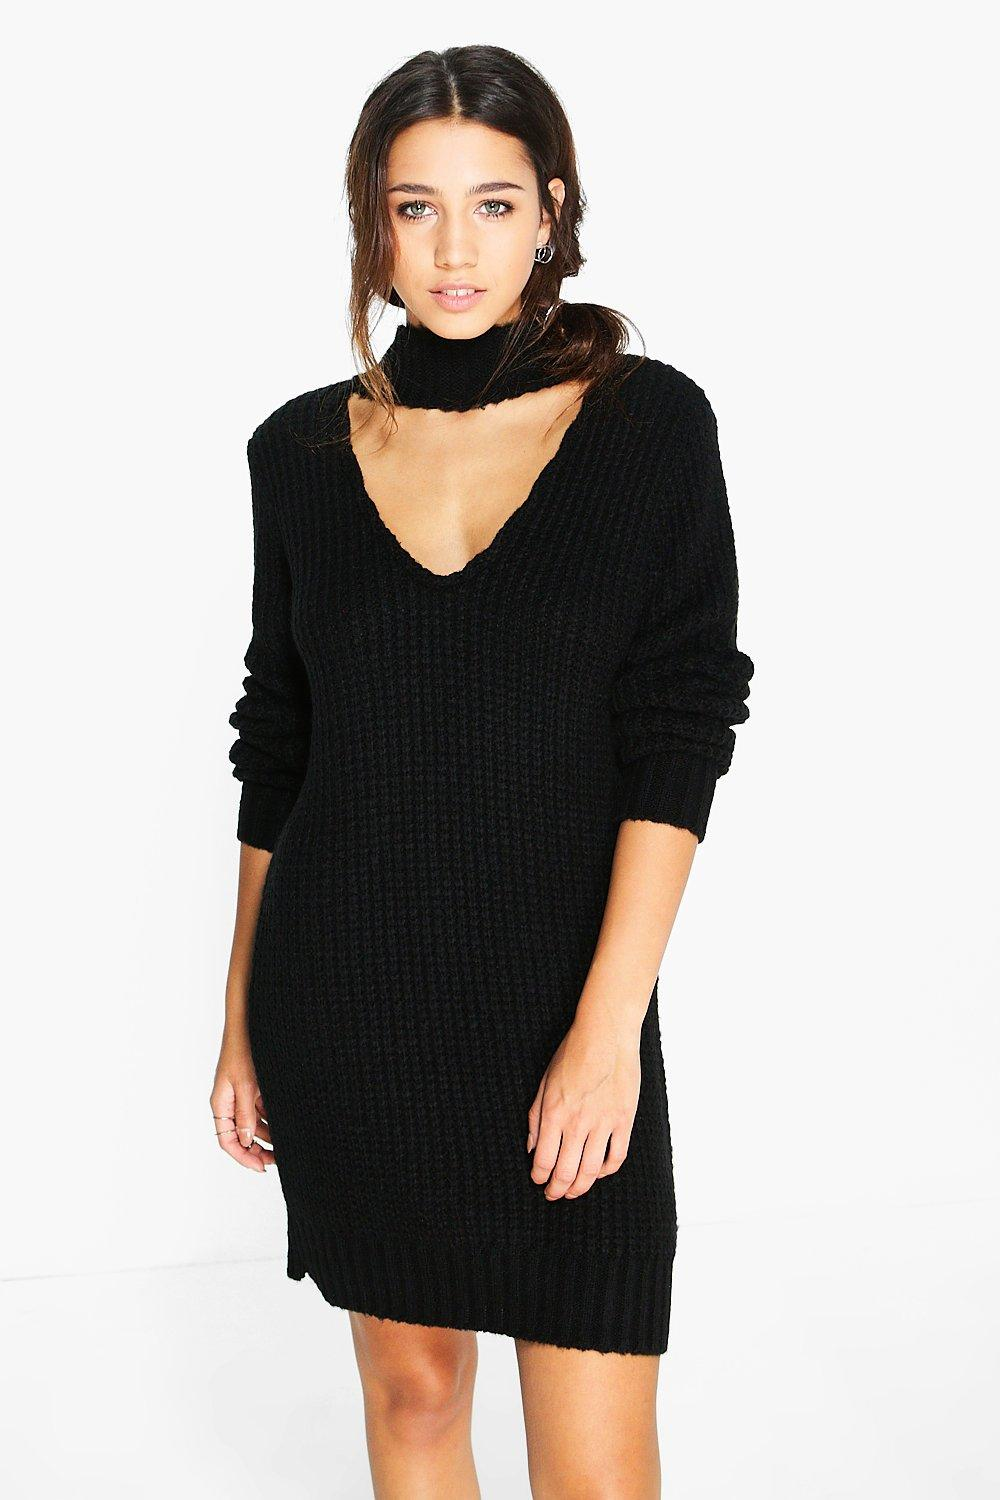 Fashion week Jumper Black dress pictures for lady